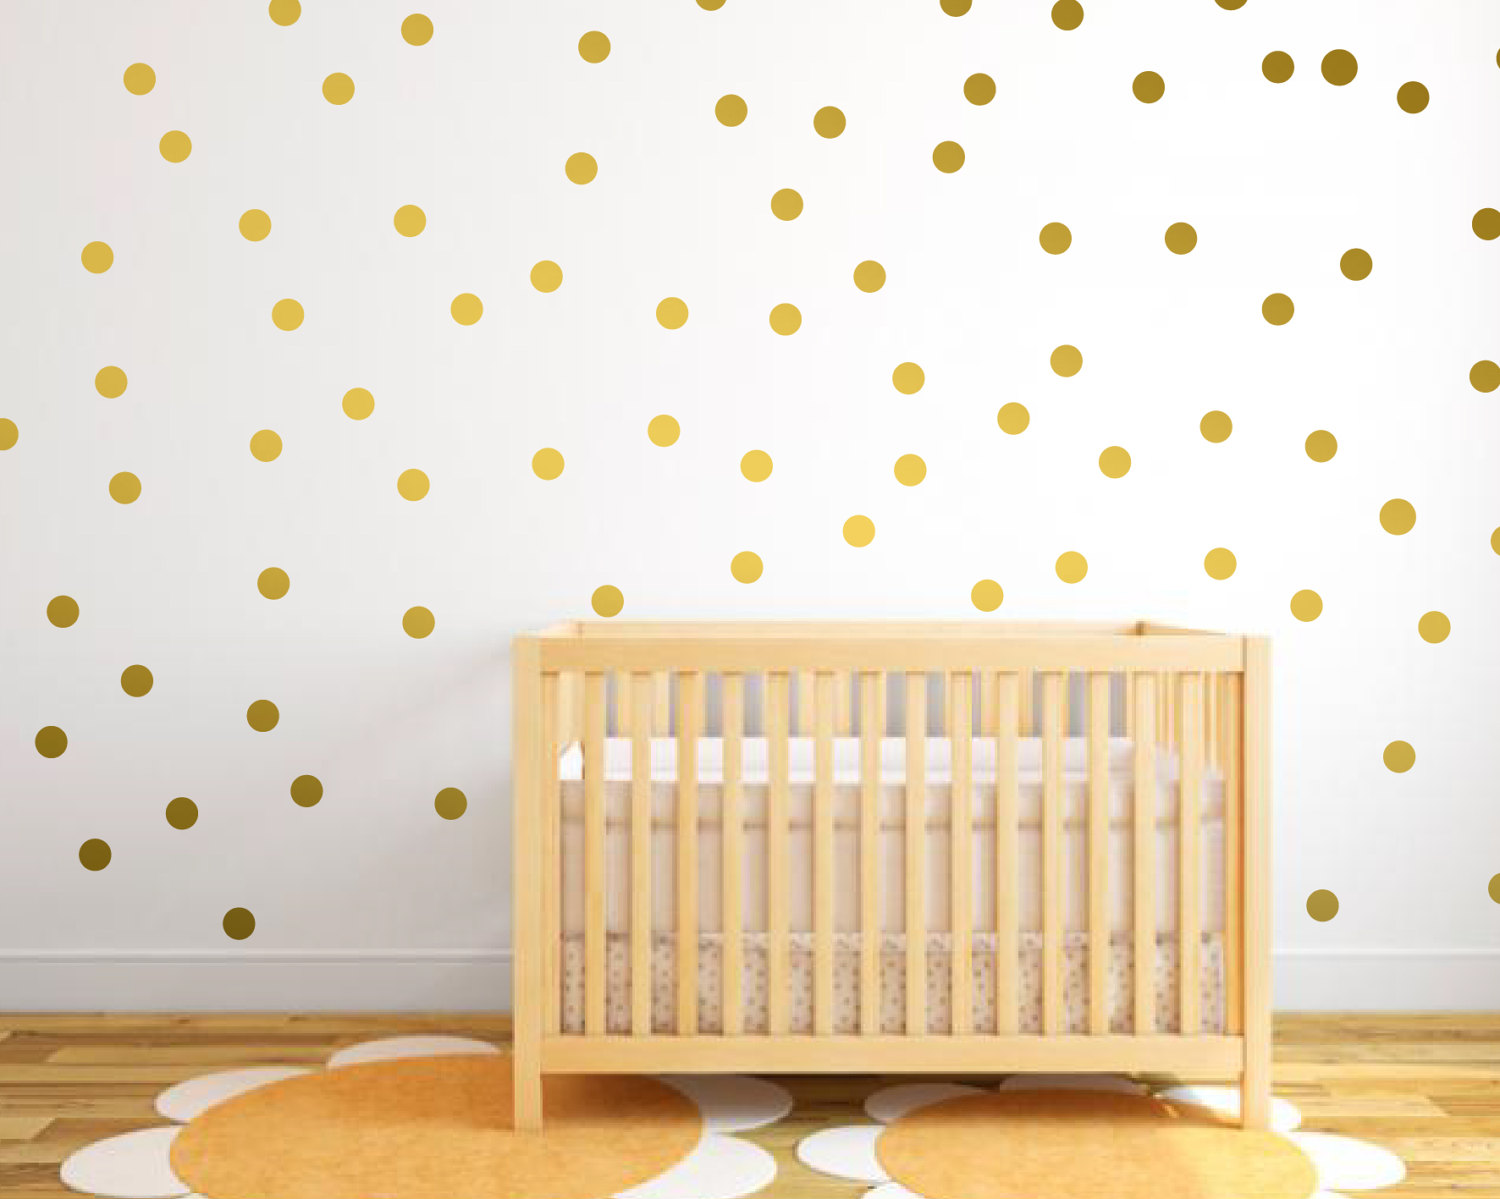 Metallic Gold Wall Stickers Polka Dots Wall Sticker Decor, Polka Dot ...